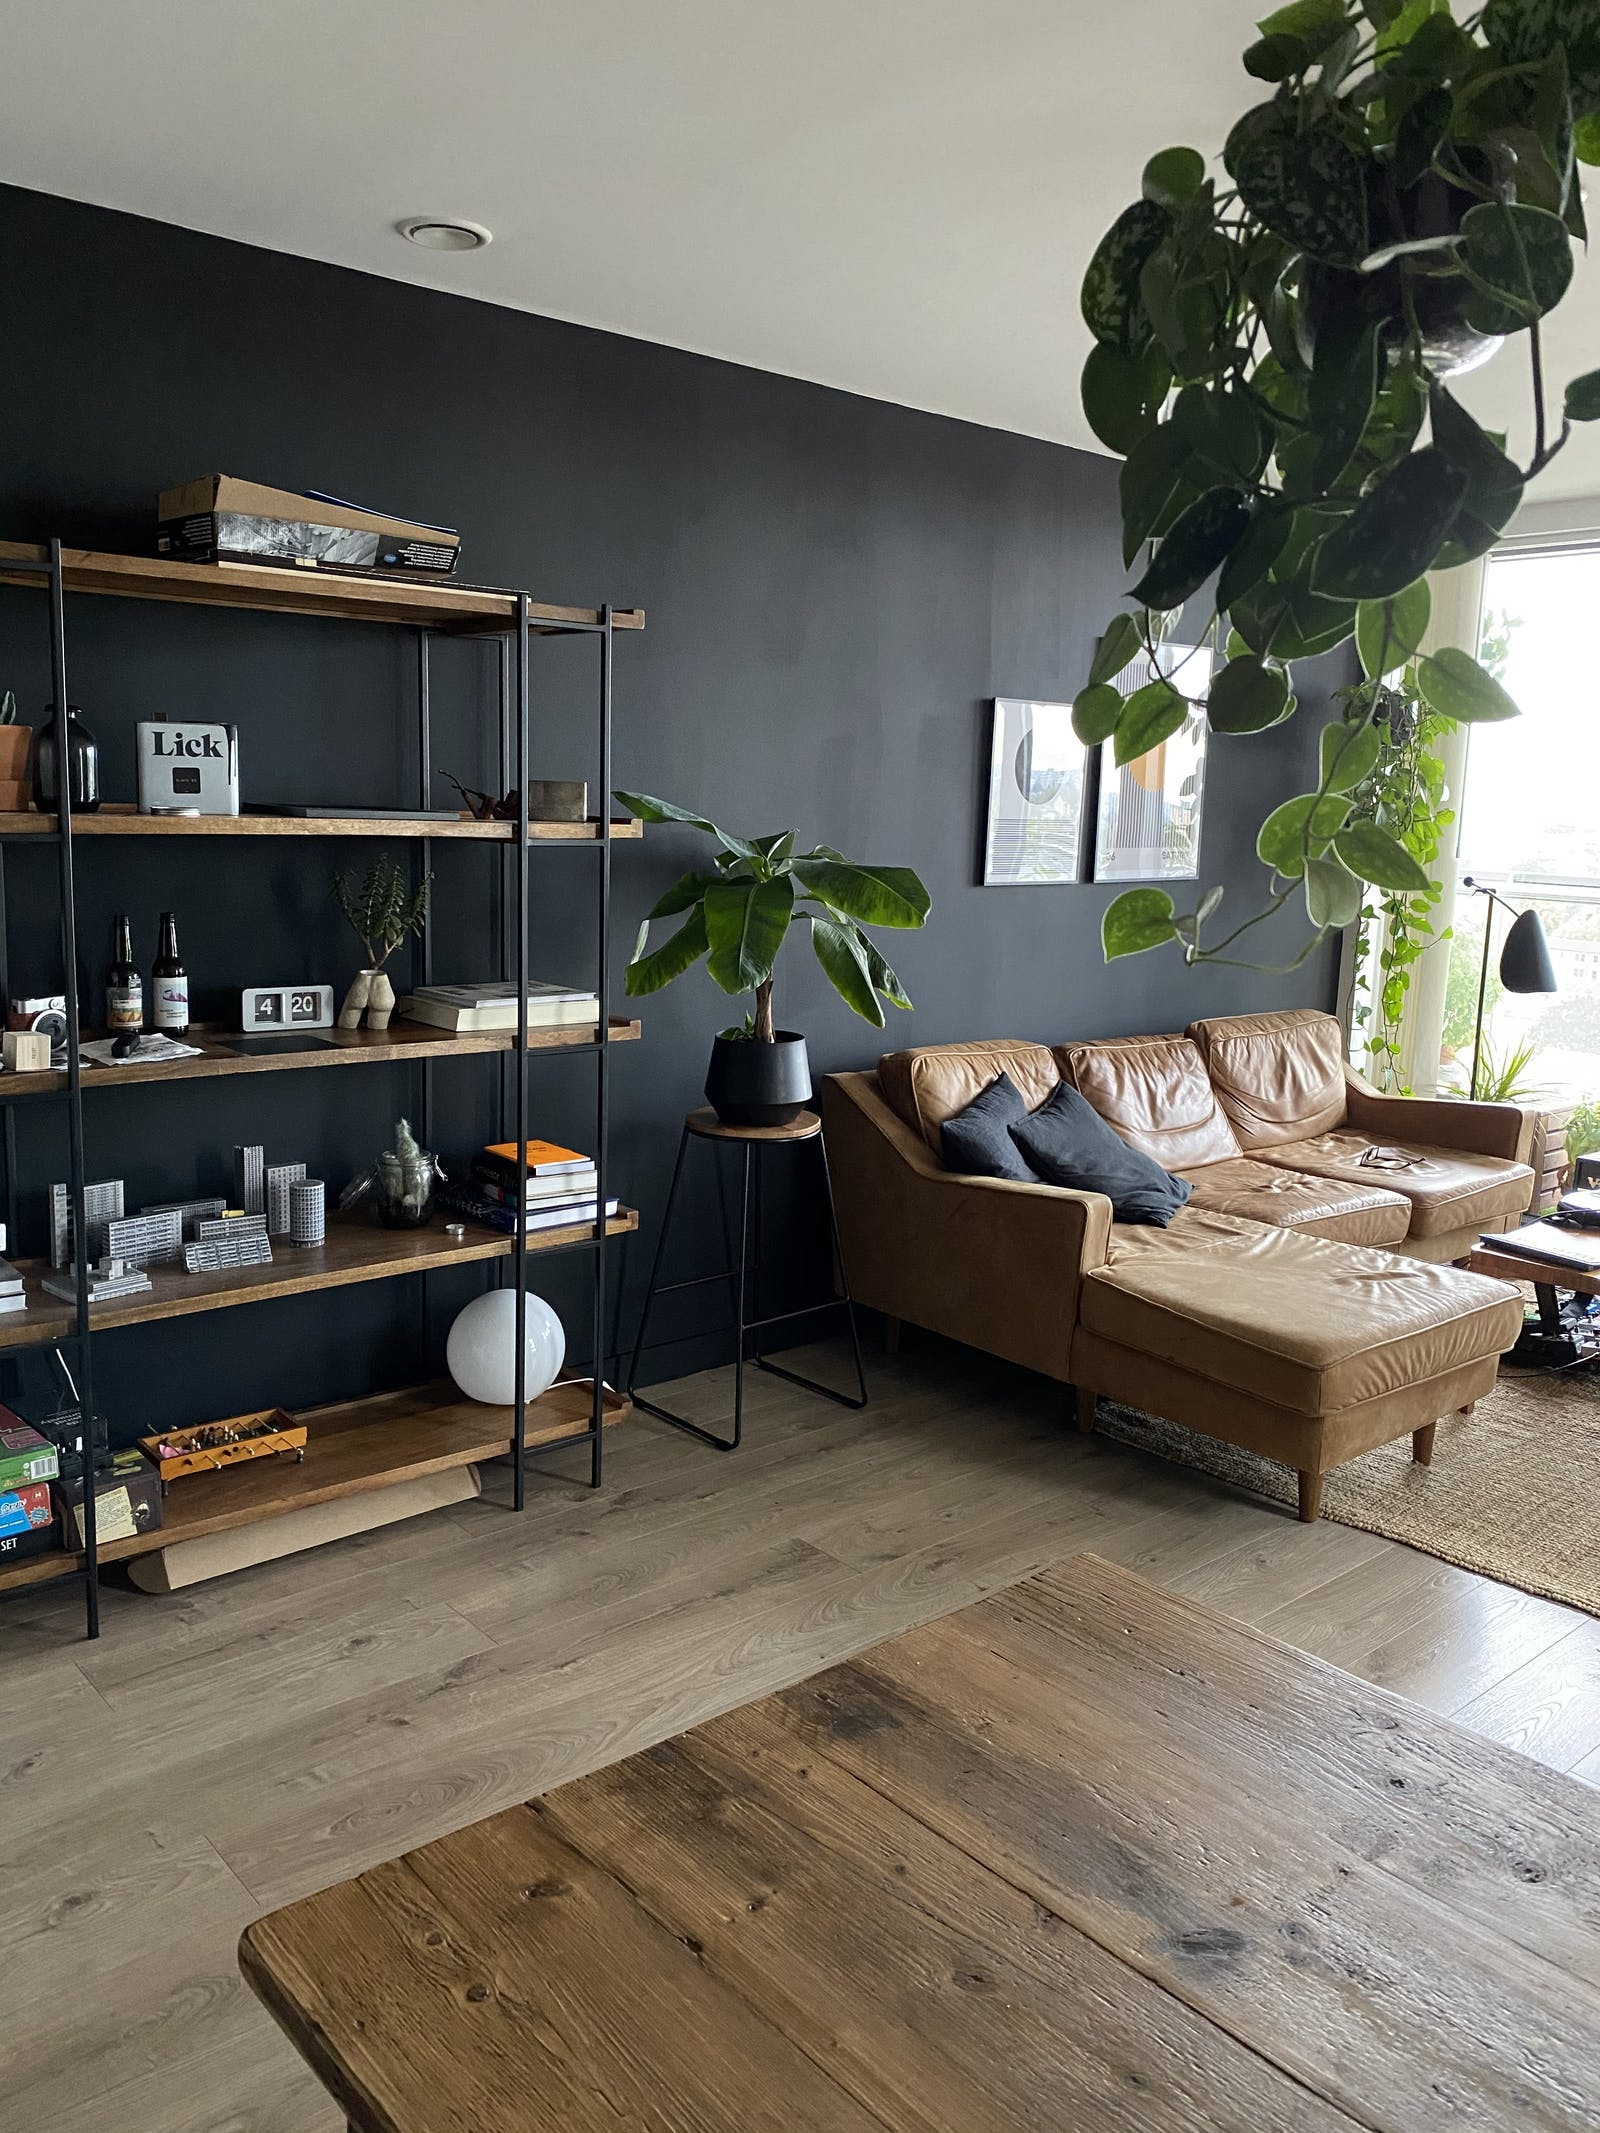 Light and bright living room painted in Lick black 02 with a large sofa and shelving